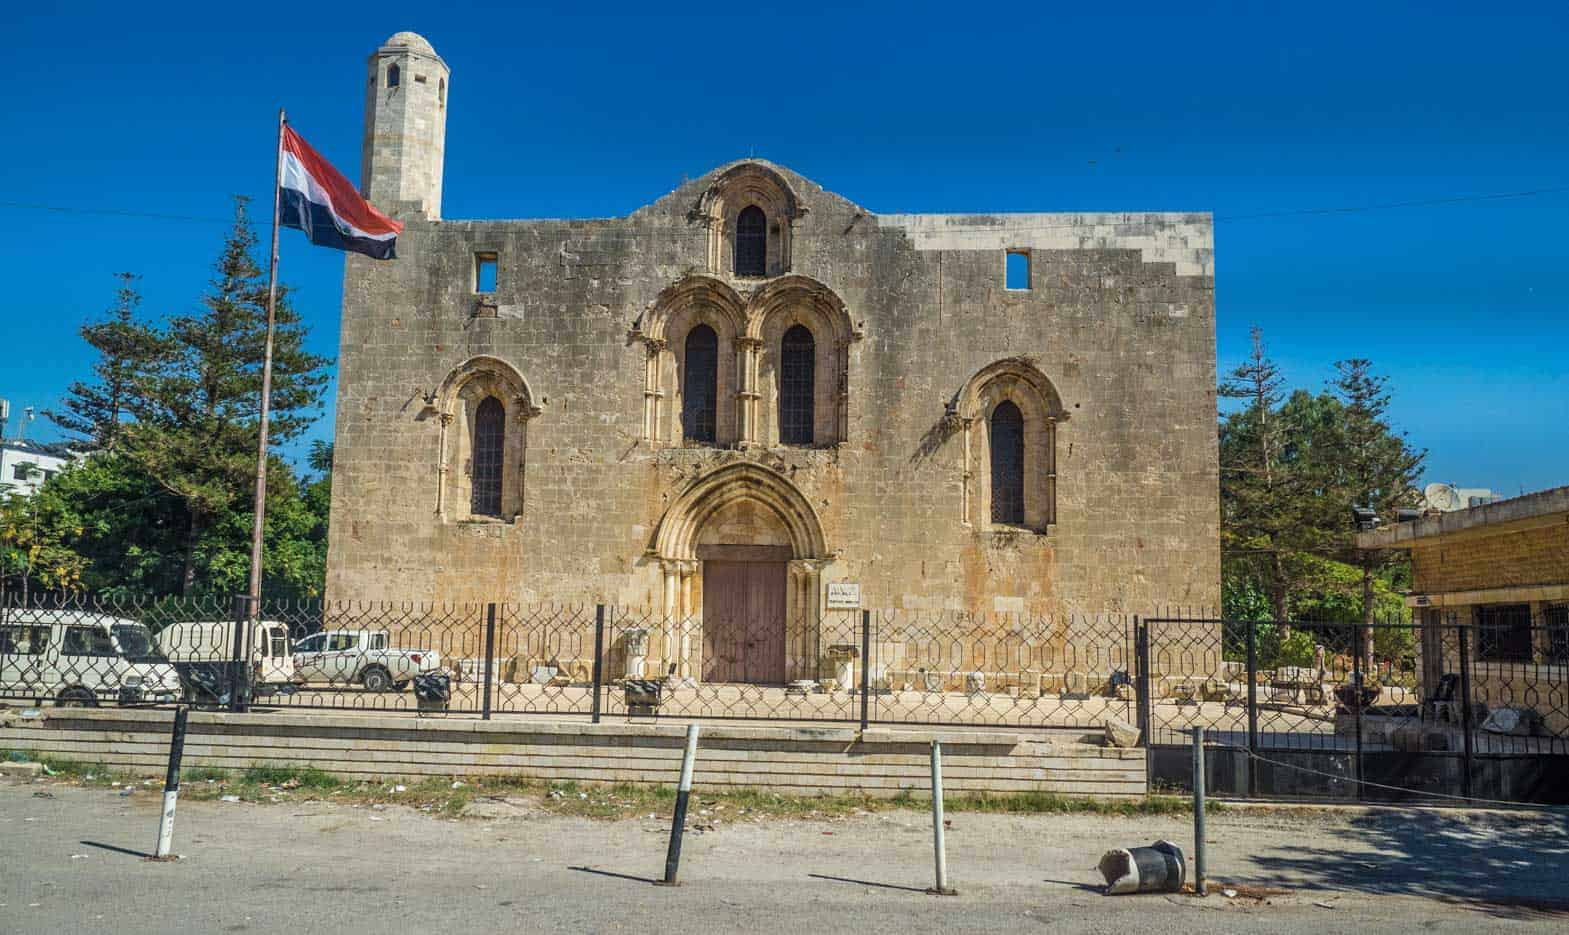 The Cathedral of Our Lady of Tortosa syria